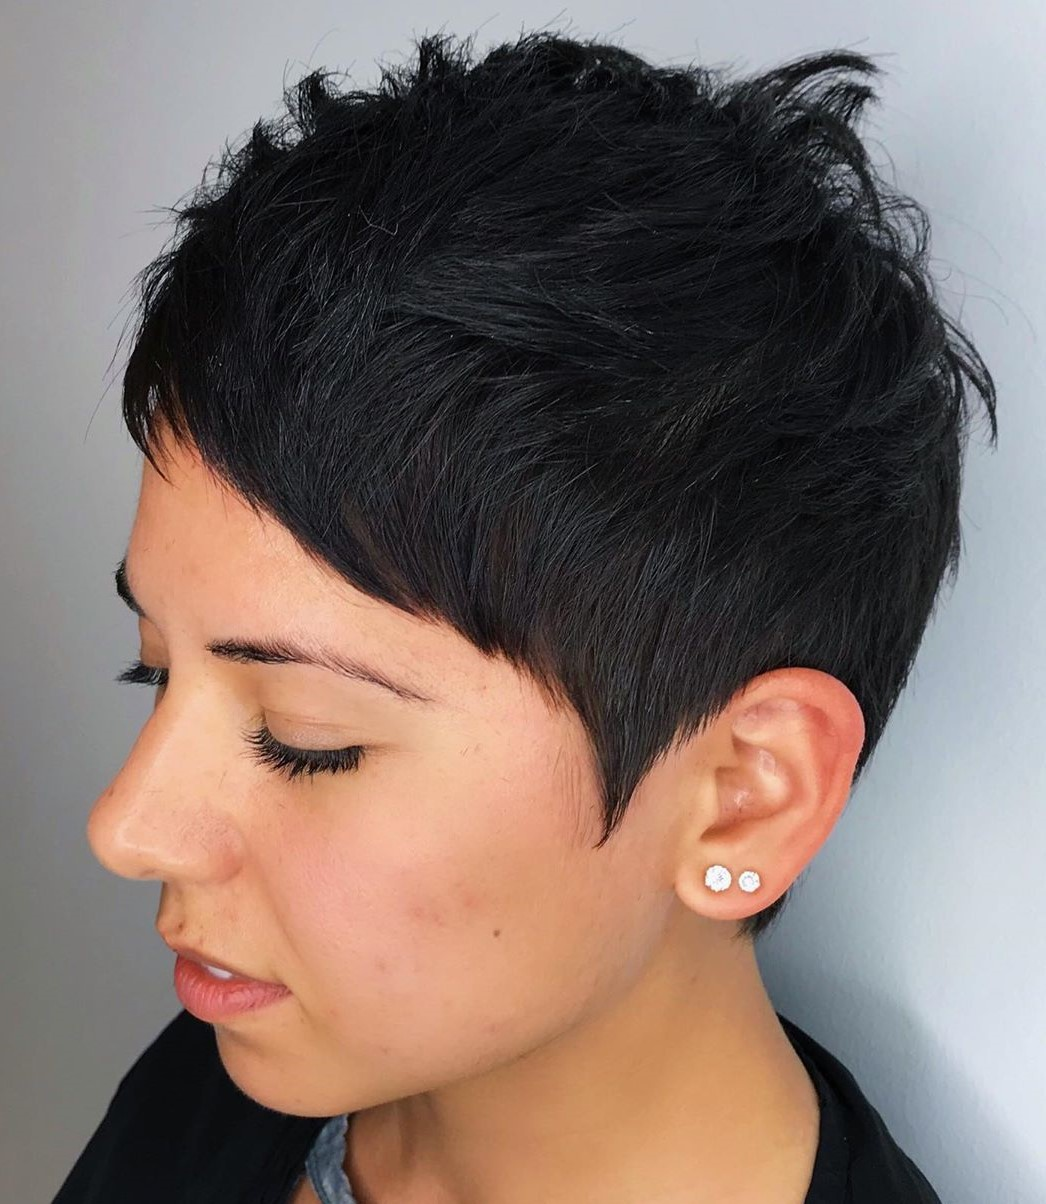 Edgy Textured Short Pixie